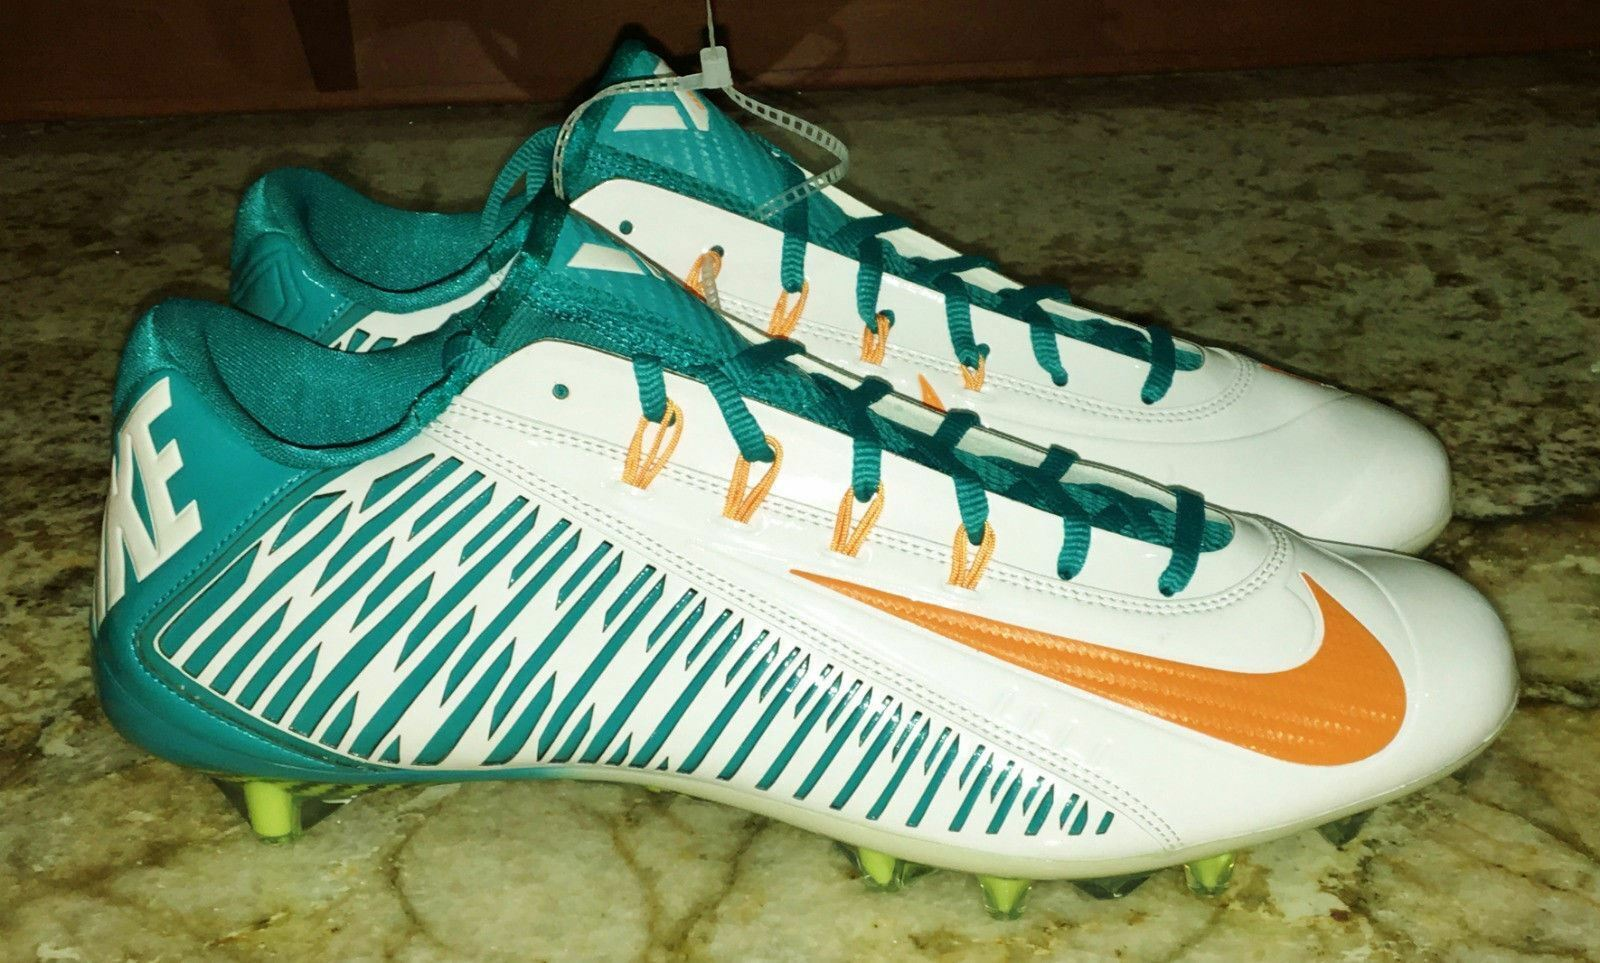 NIKE Vapor Carbon 2014 Elite TD PF White Aqua orange Football Cleats NEW Mens 14